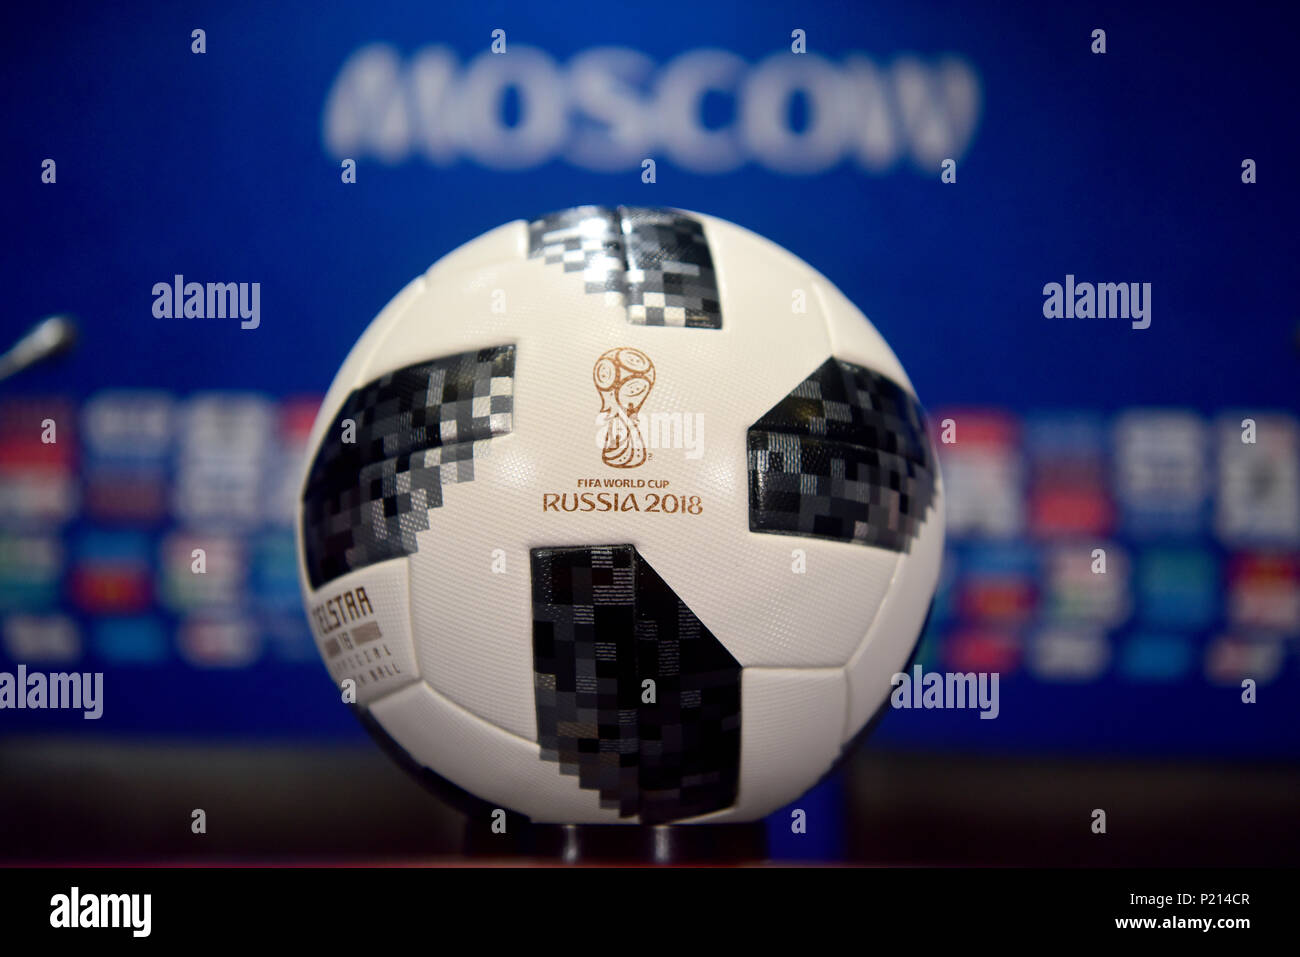 Moscow, Russia - June 13, 2018. Official World Cup 2018 match ball with blurred name of the host city Moscow in the background. Credit: Alizada Studios/Alamy Live News - Stock Image